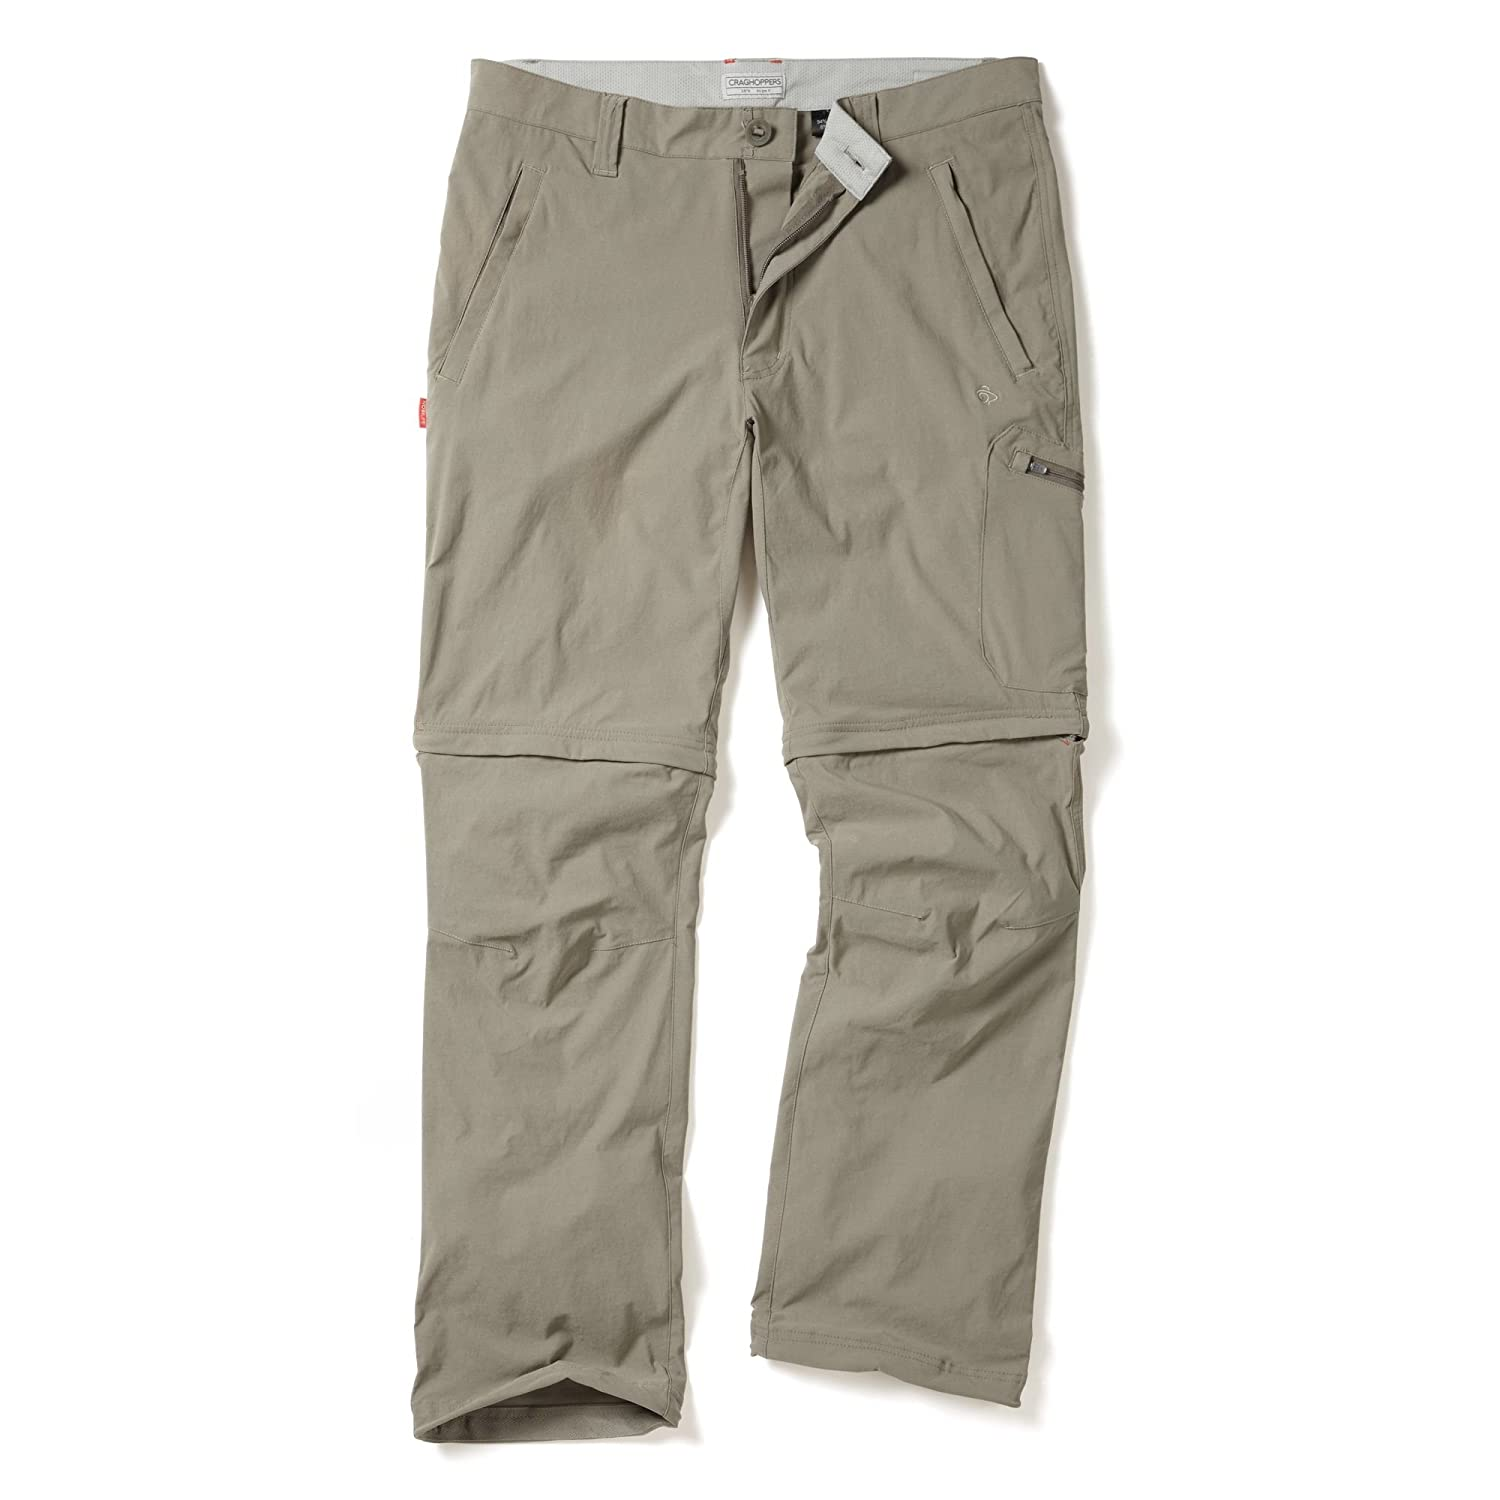 Craghoppers NosiLife Pro Convertible Pants - Zipphose/Outdoorhose